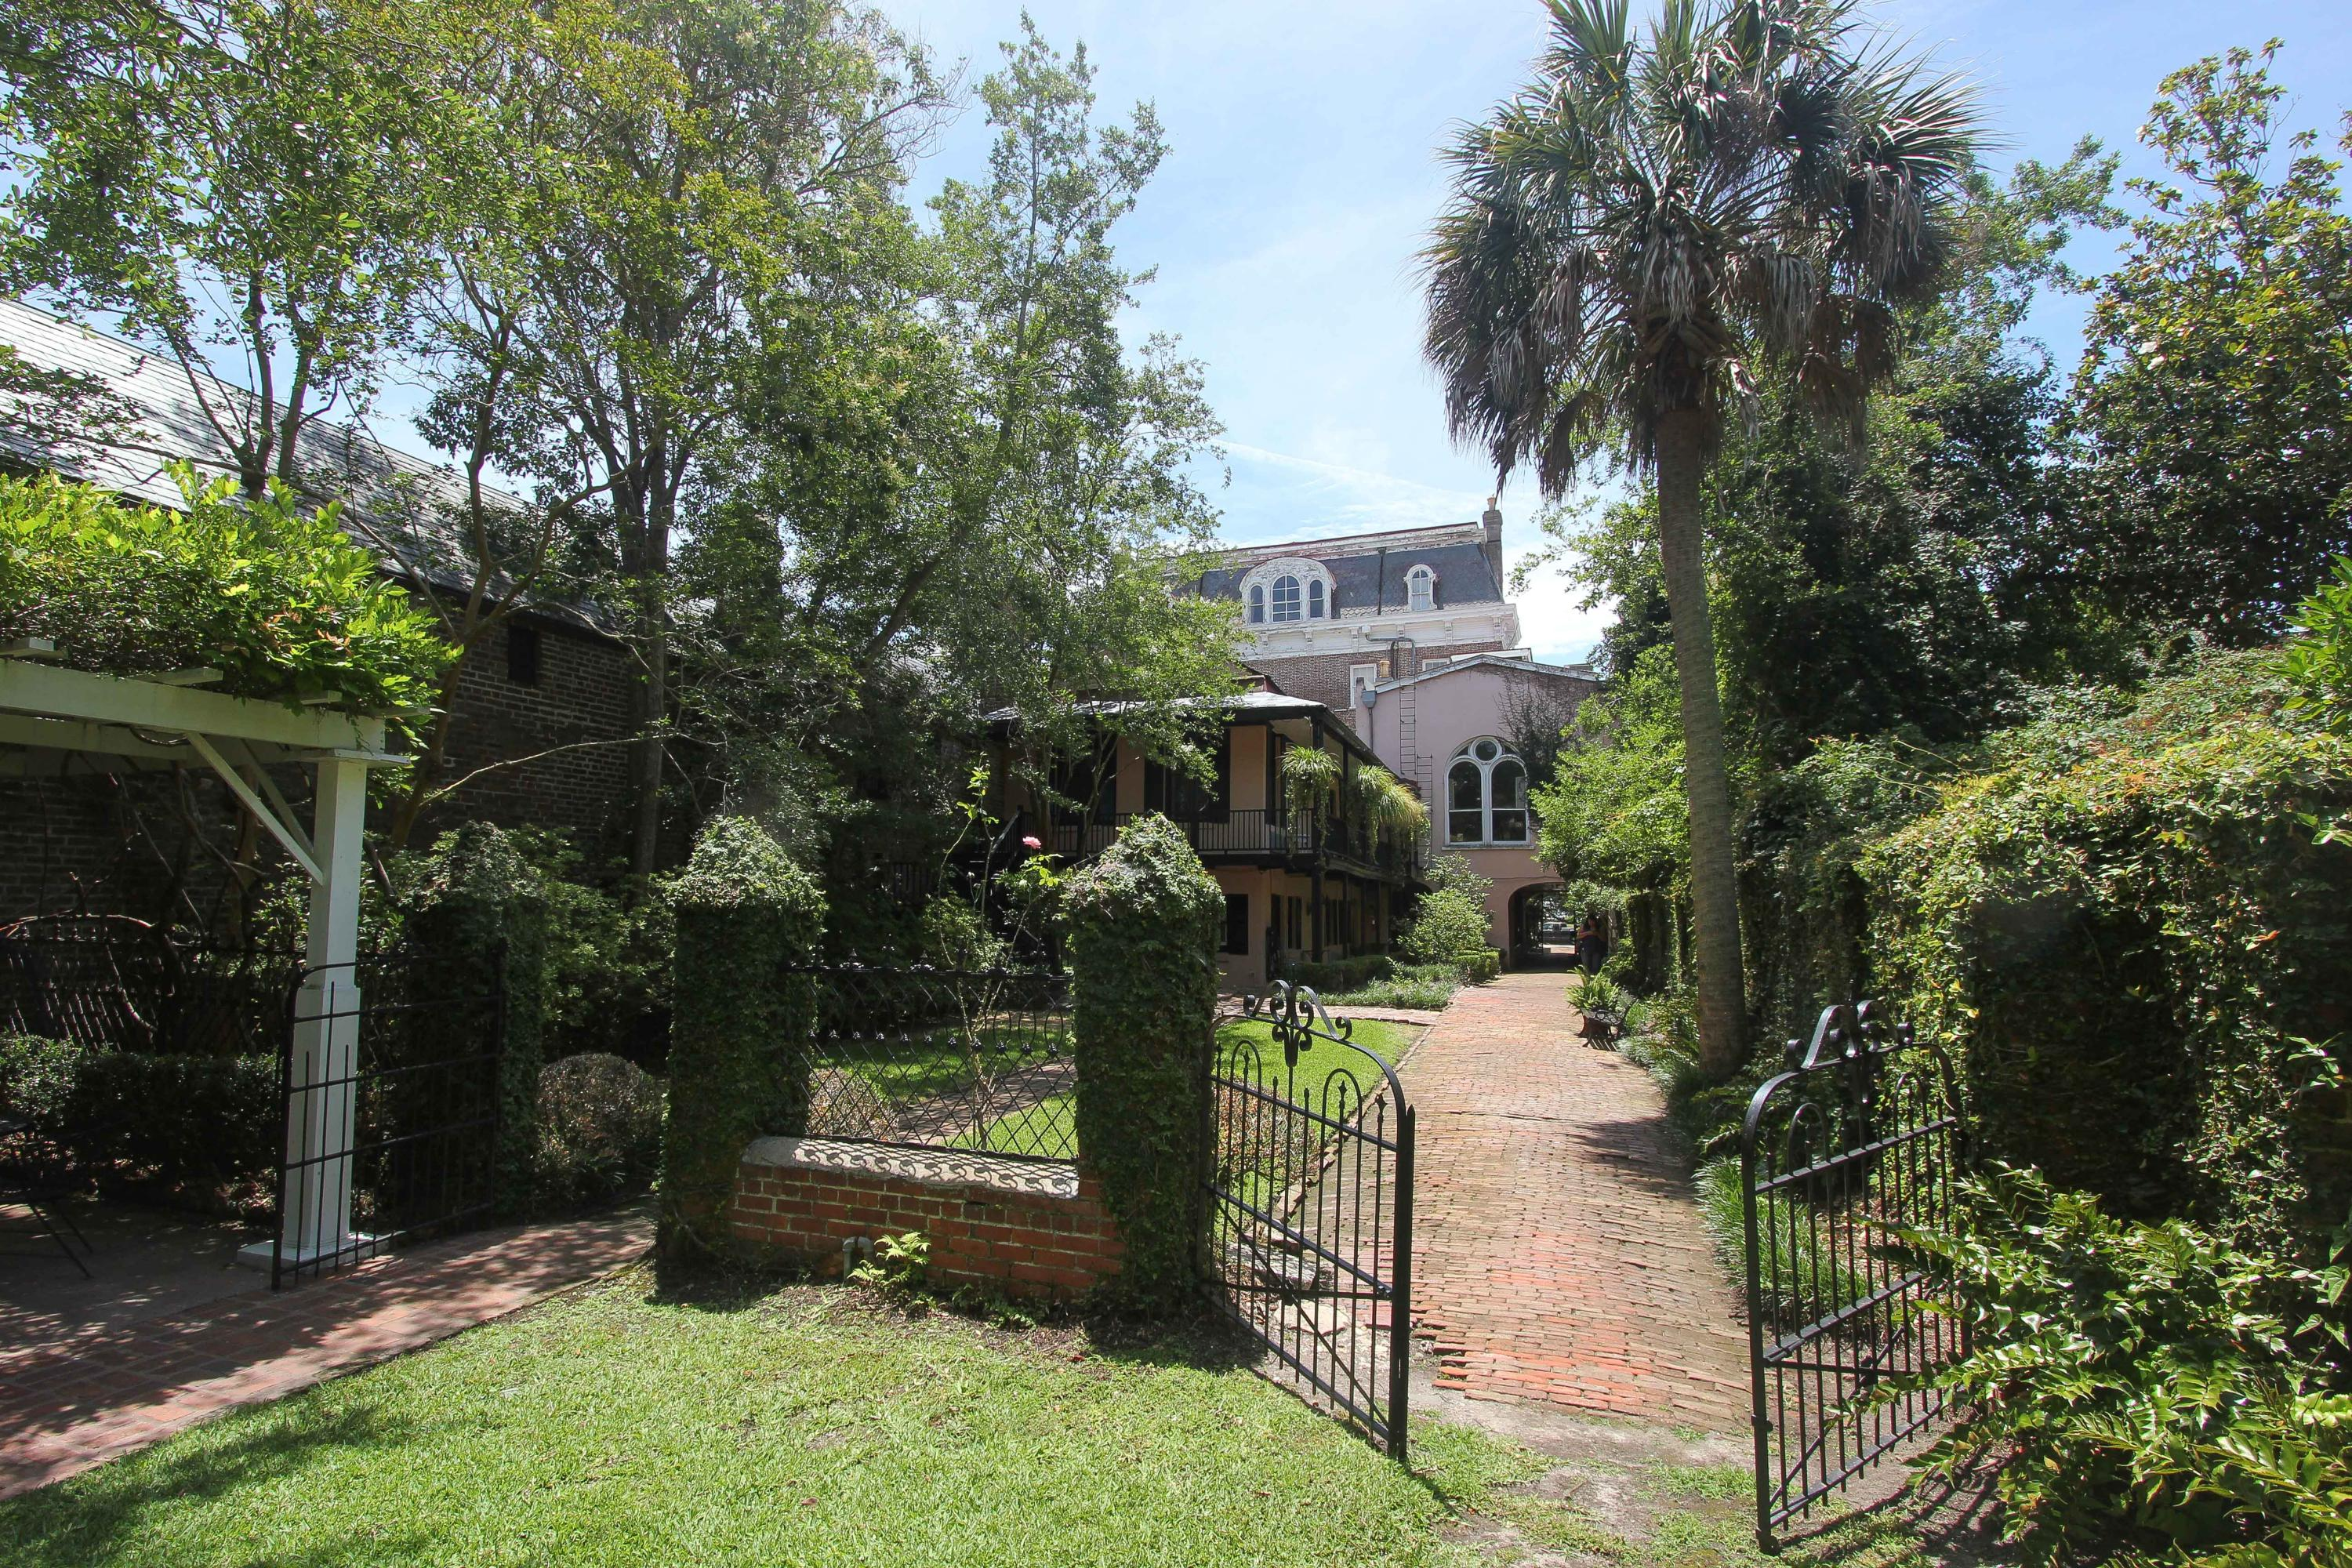 Home for sale 20 Battery , South Of Broad, Downtown Charleston, SC